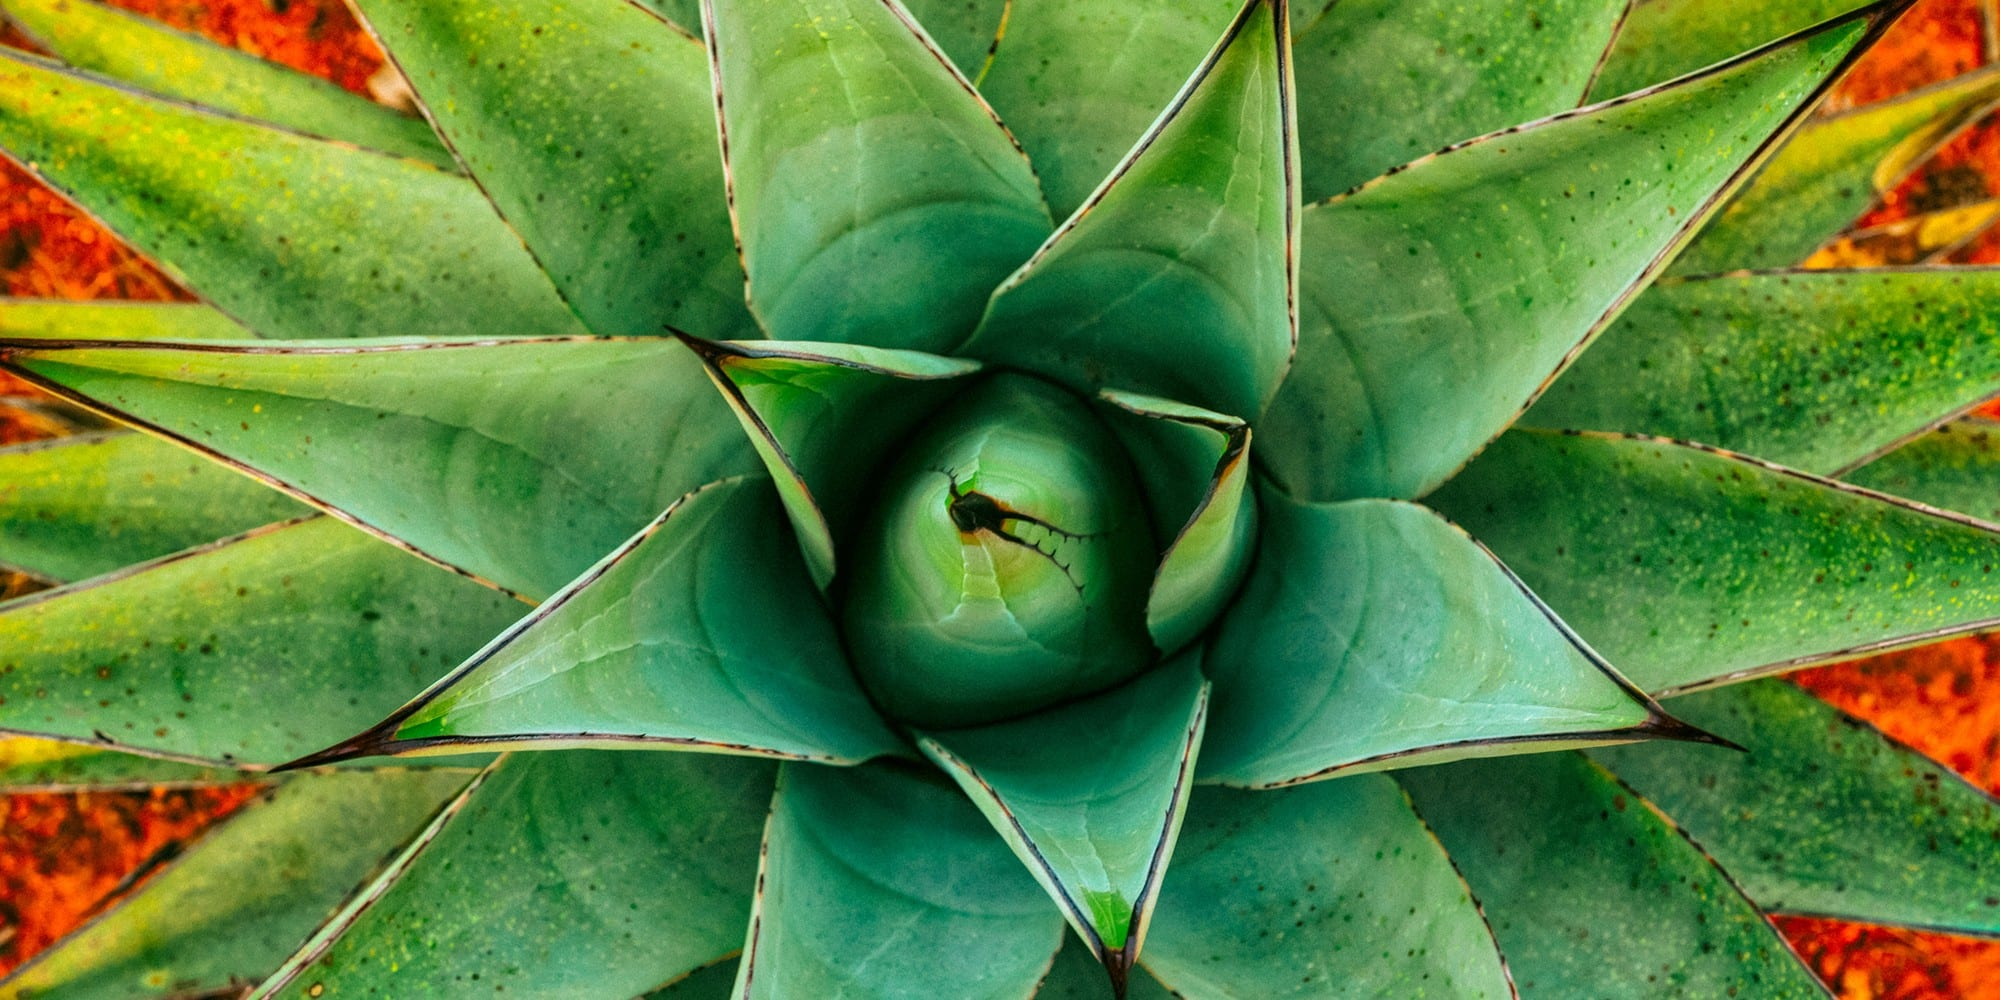 Agave plant. Photo by CEB Imagery.